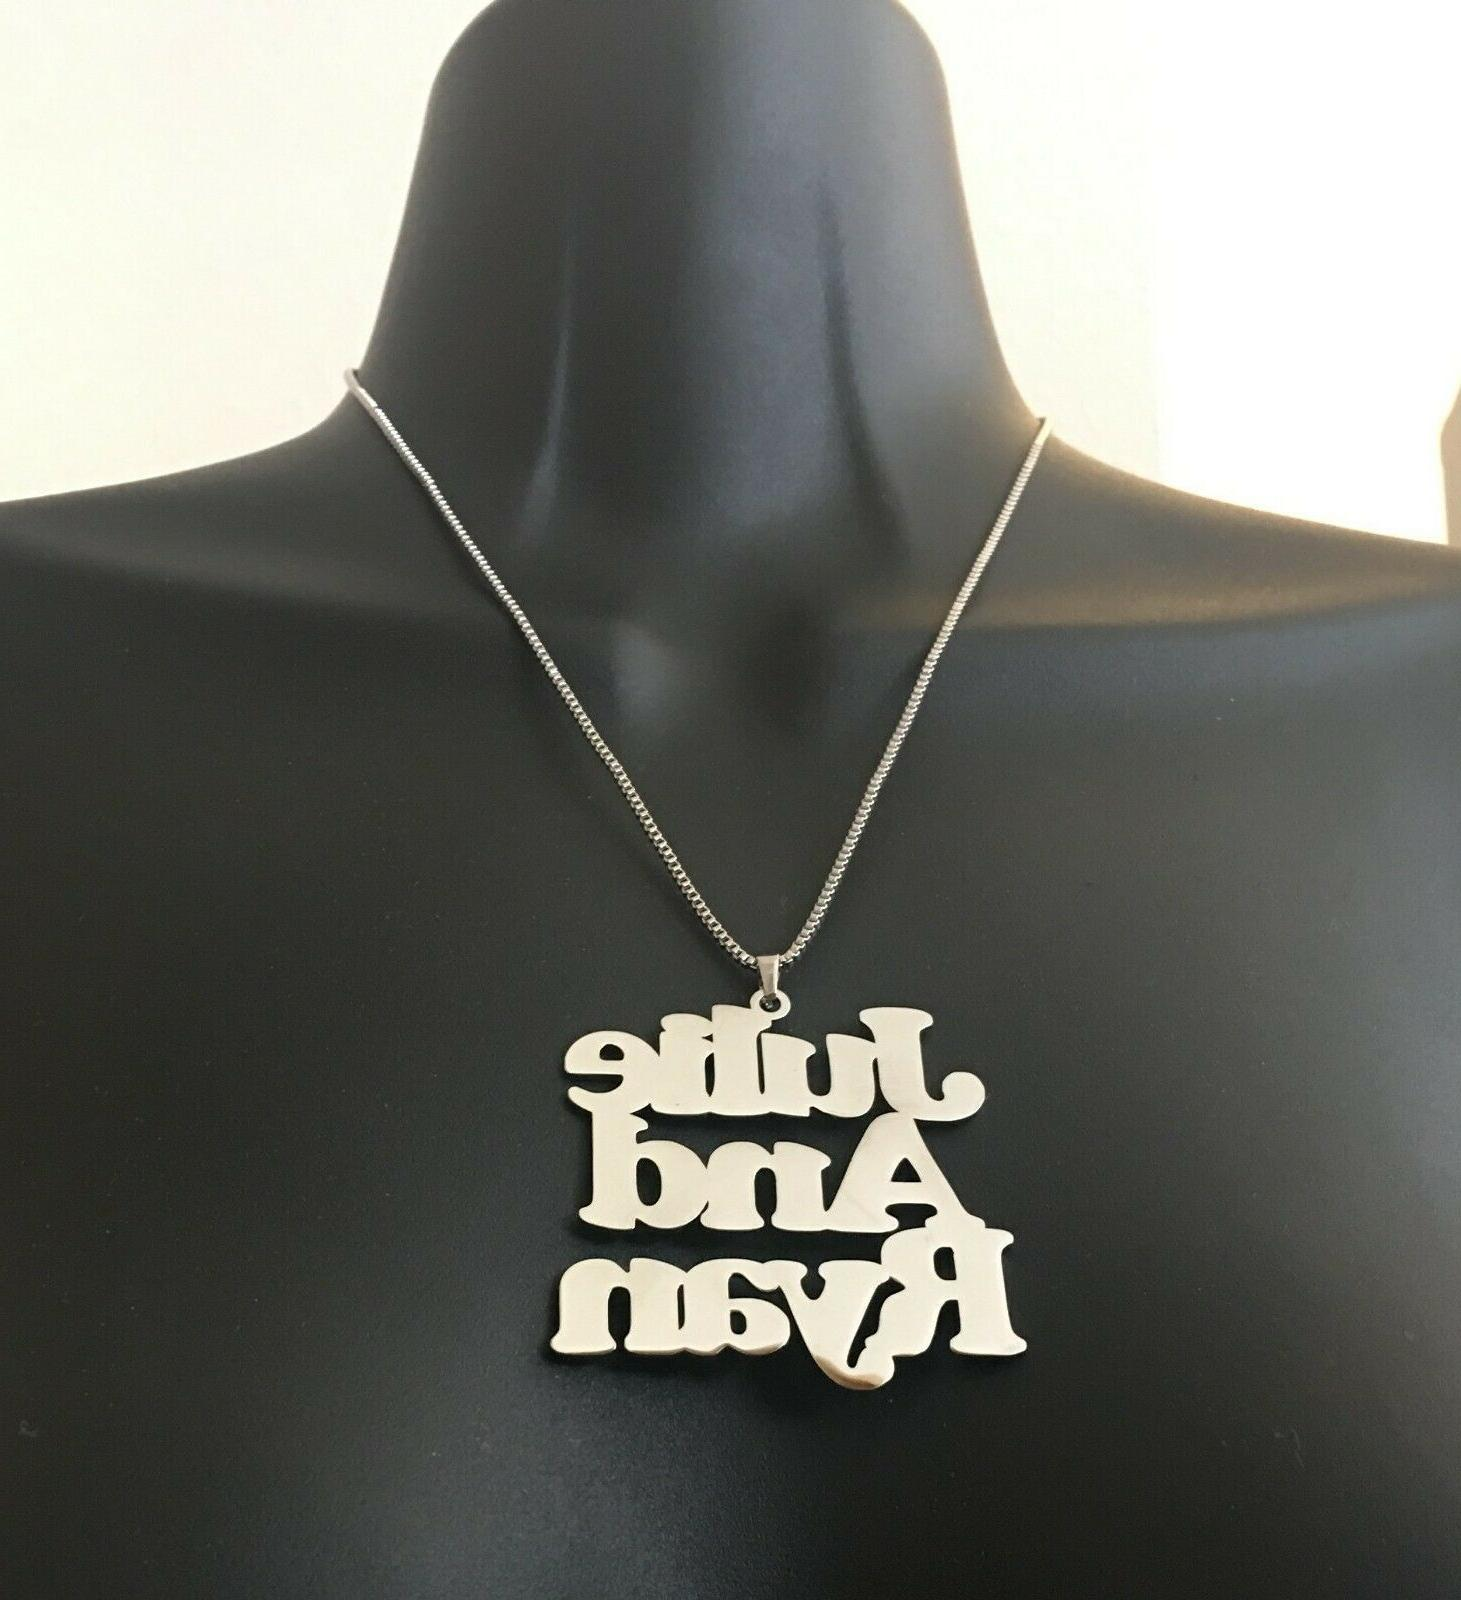 Personalized, one or more necklace